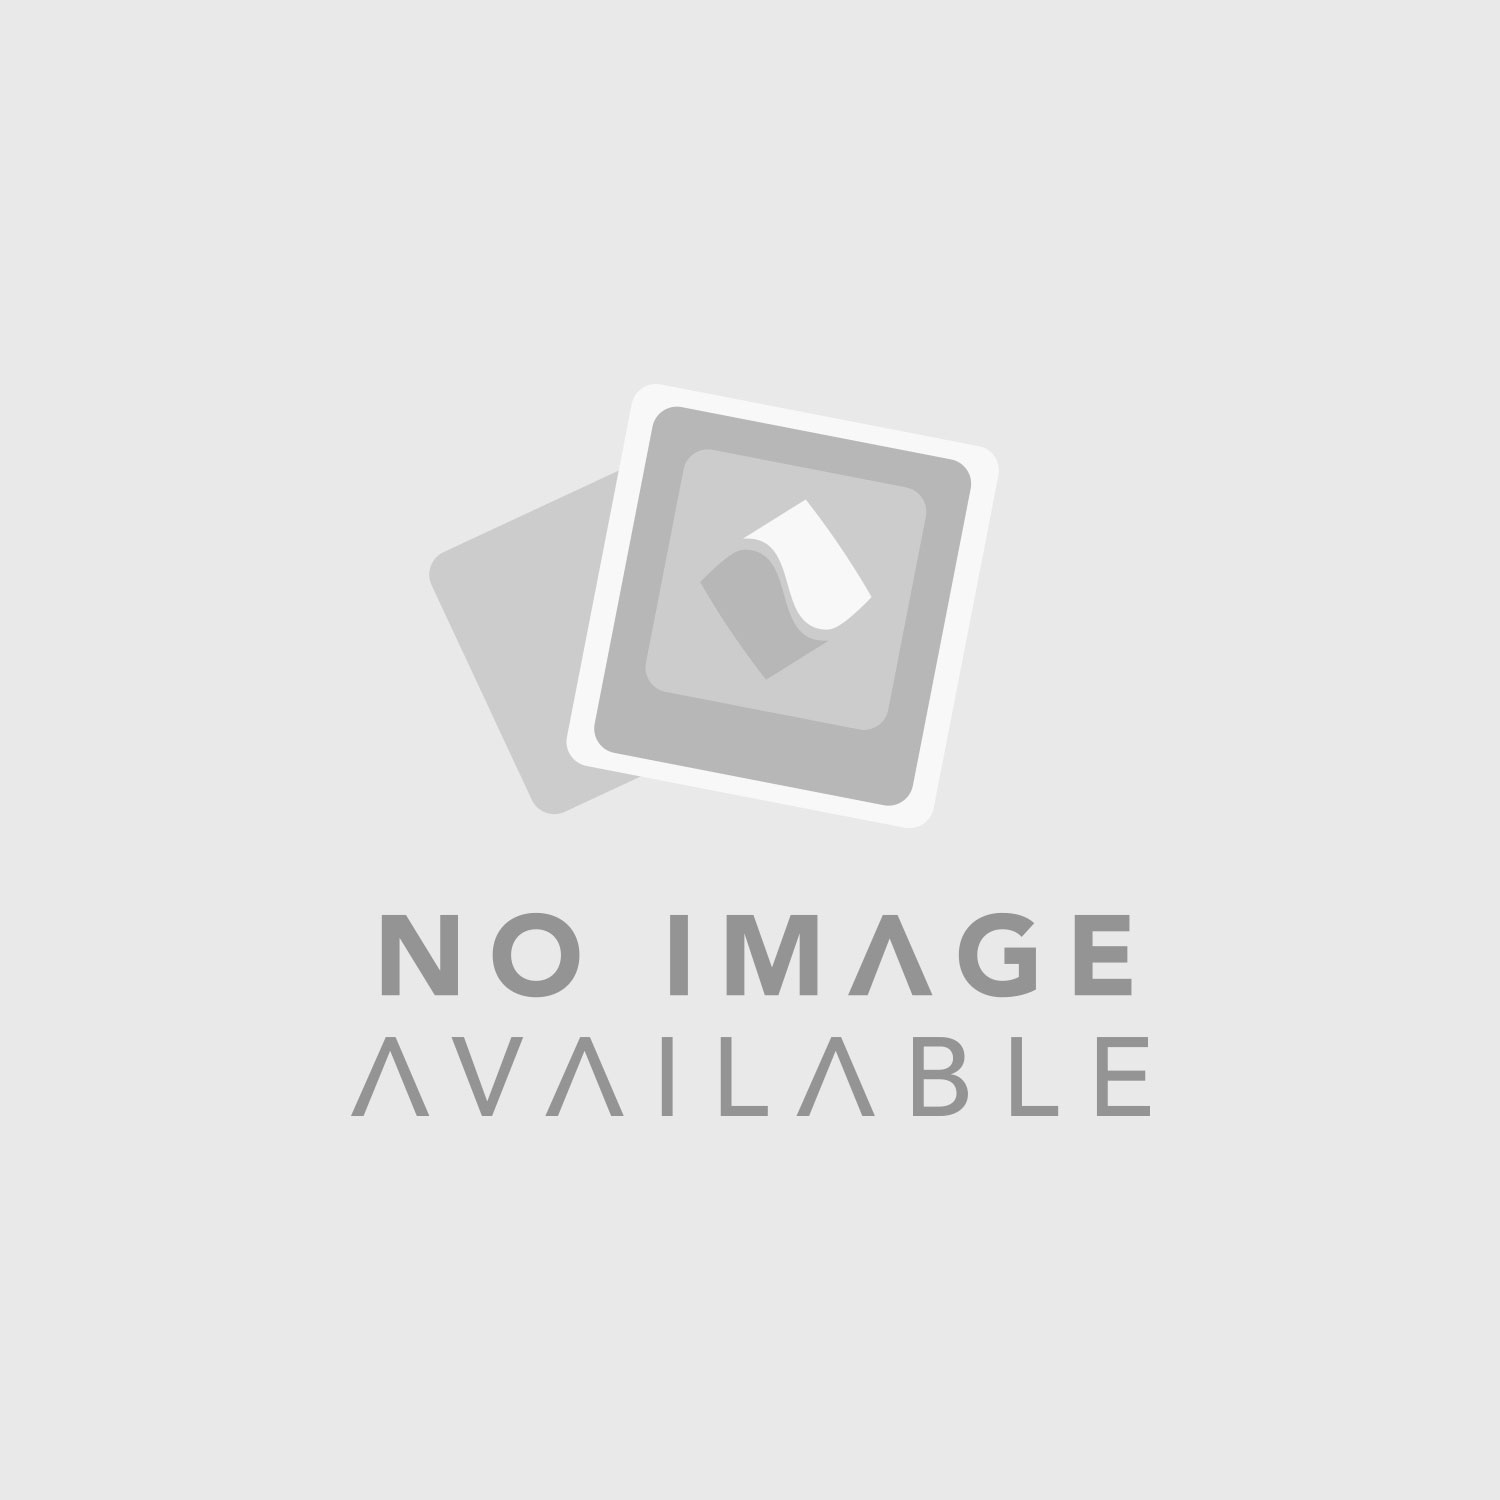 Yamaha HS8I 2-Way Bi-Amp Powered Studio Monitor (Single, White)